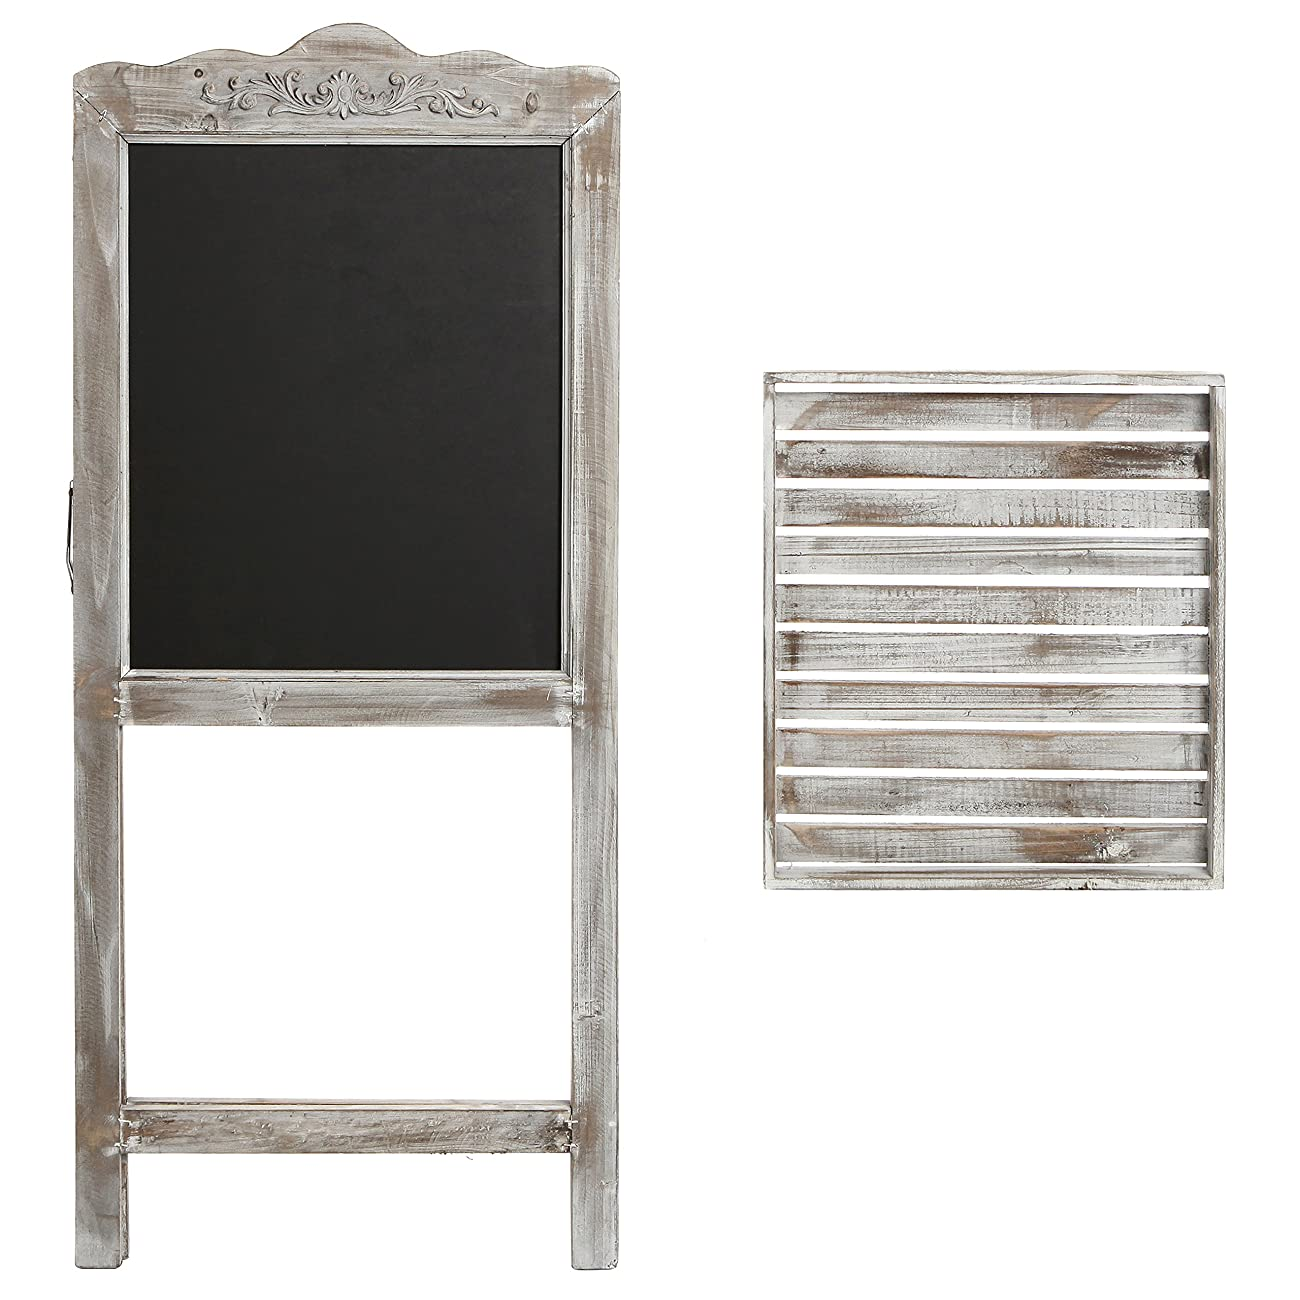 Decorative Vintage White Washed Brown Wood Large Freestanding Chalkboard Message Board Easel - MyGift 2